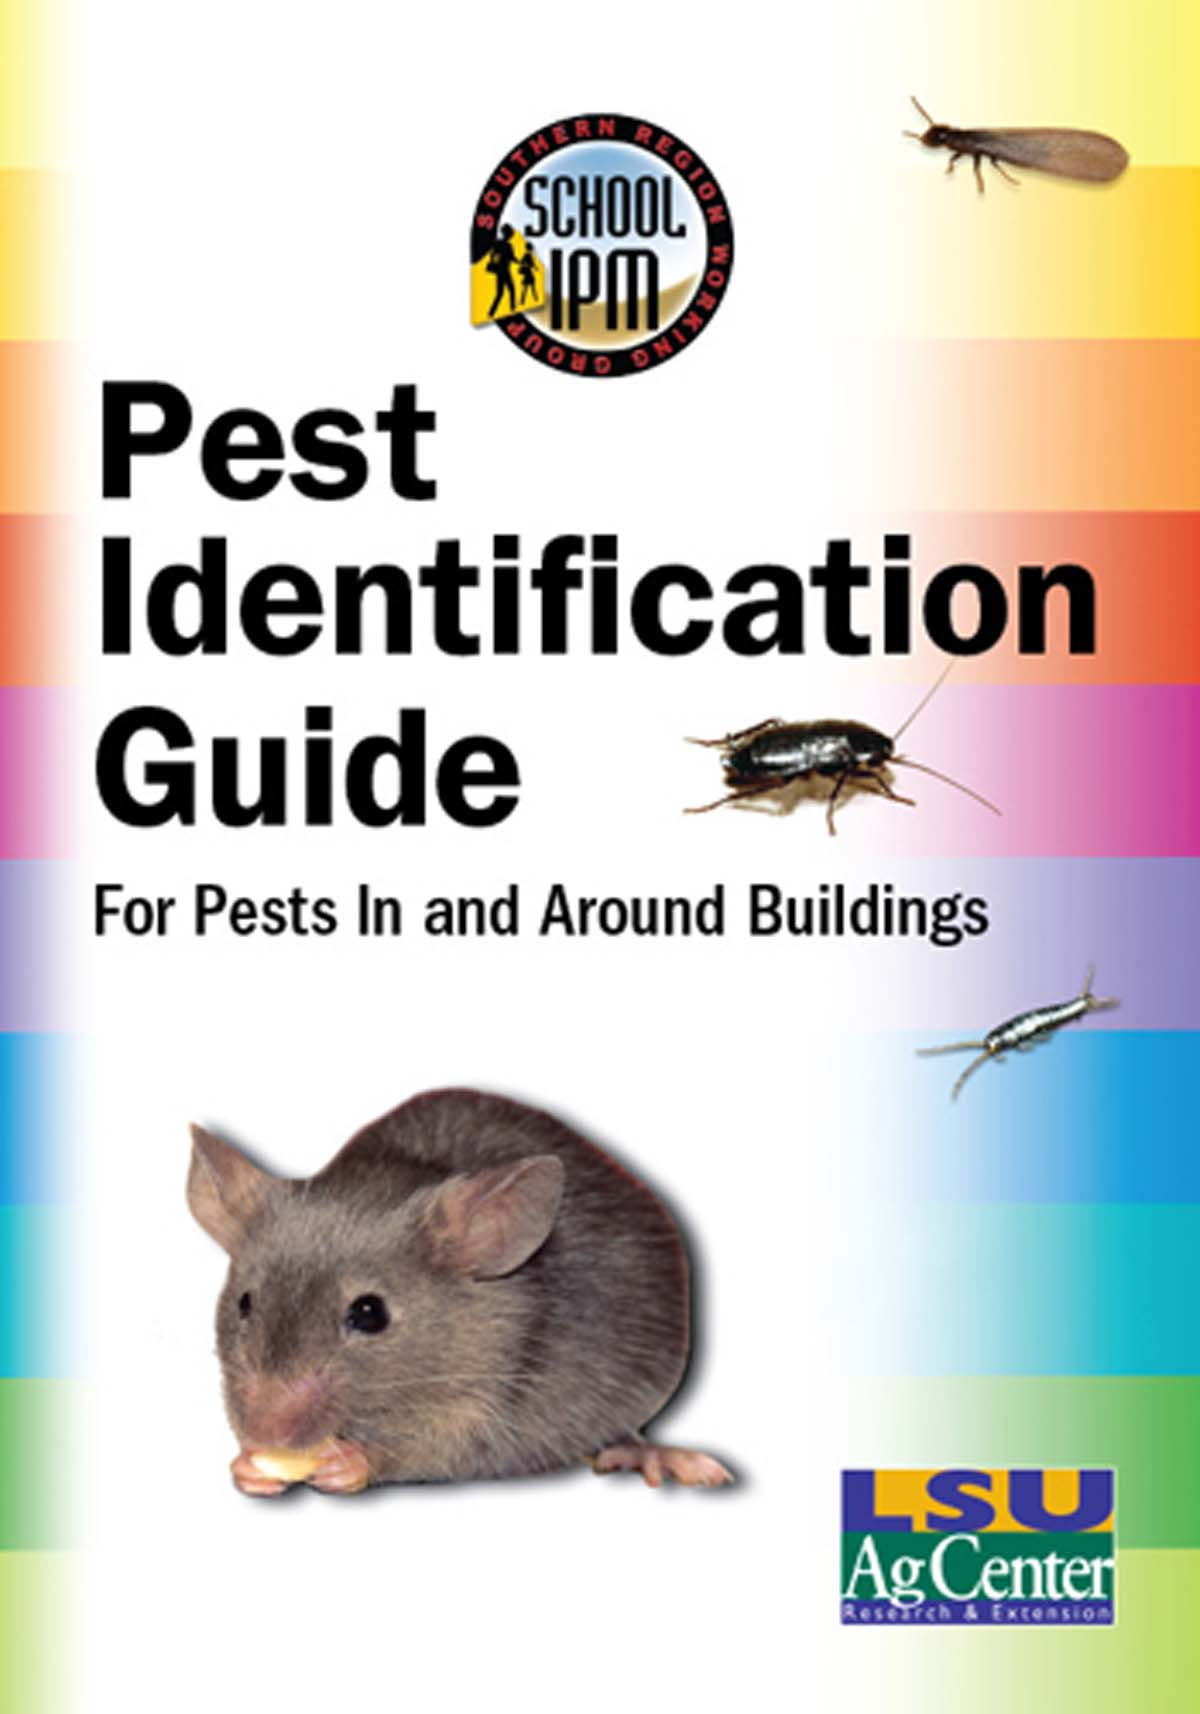 Pest Identification Guide cover shot